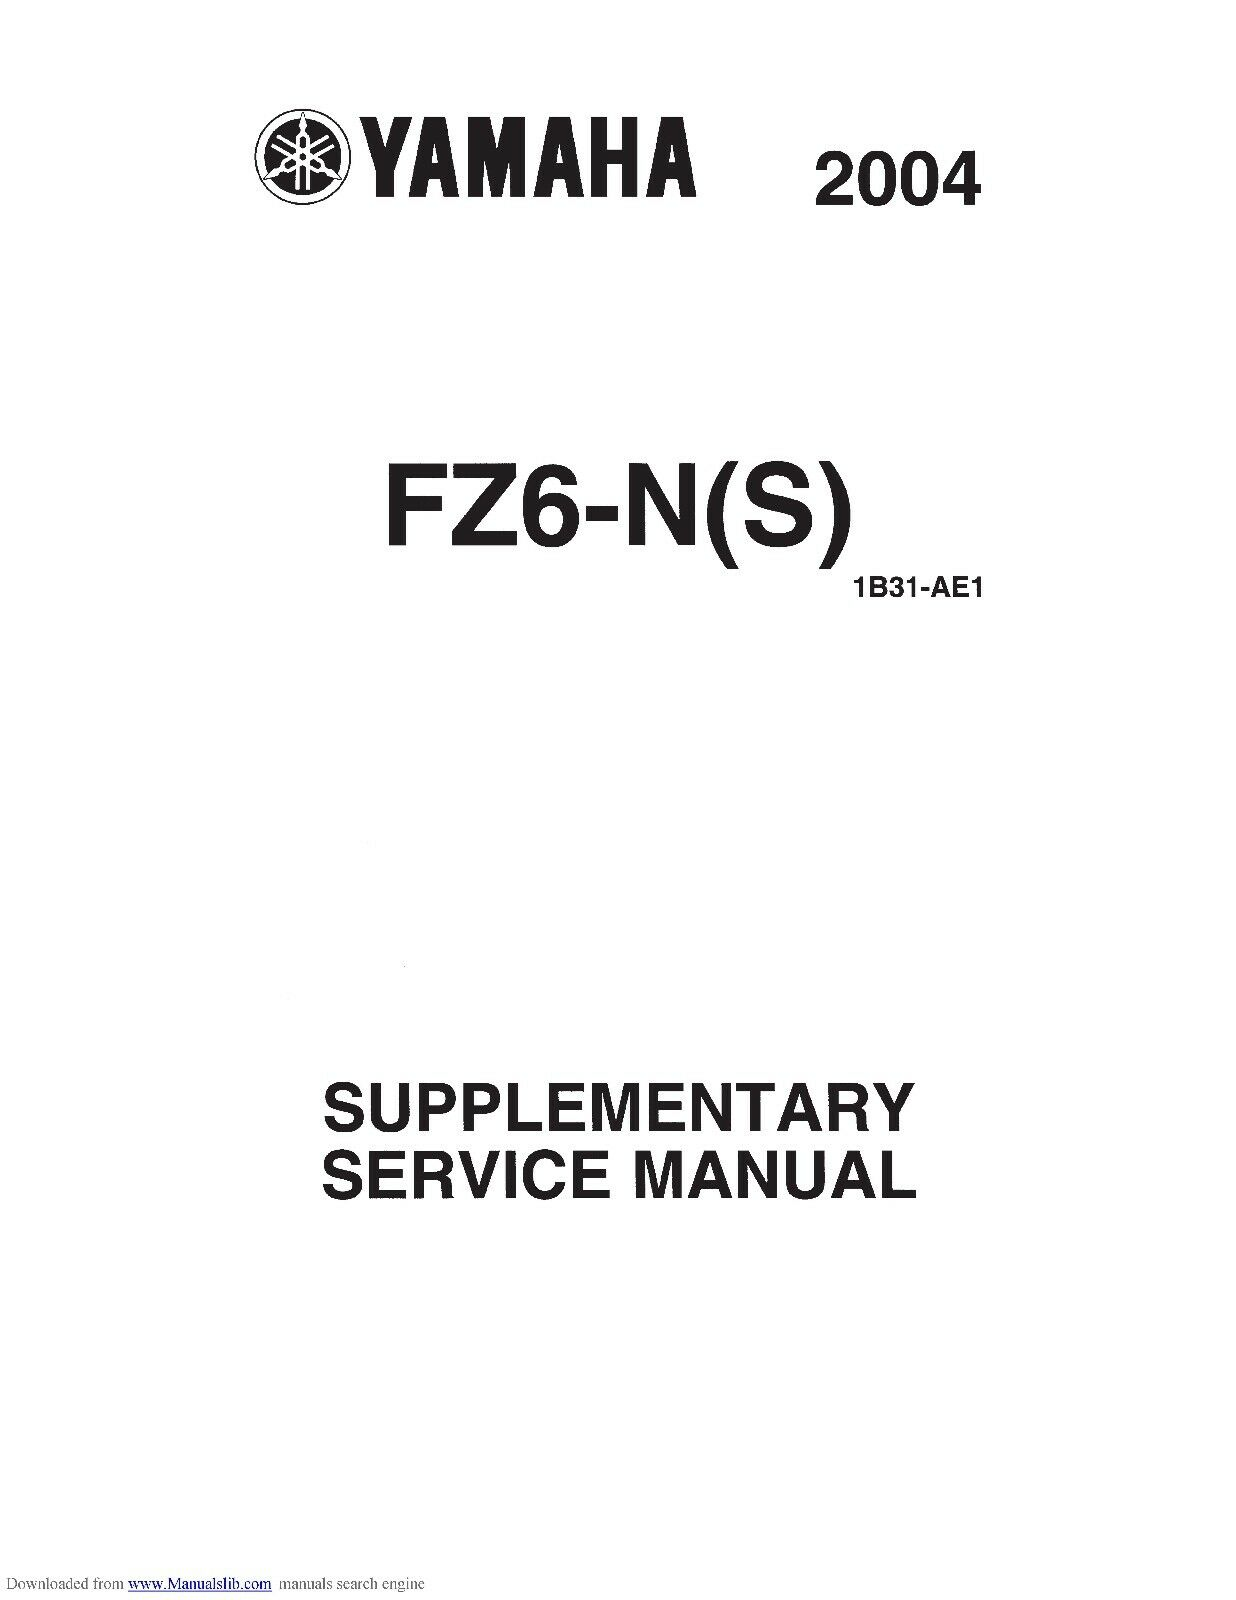 Yamaha service workshop manual 2004 FZ6-N(S) 1 of 12Only 1 available ...